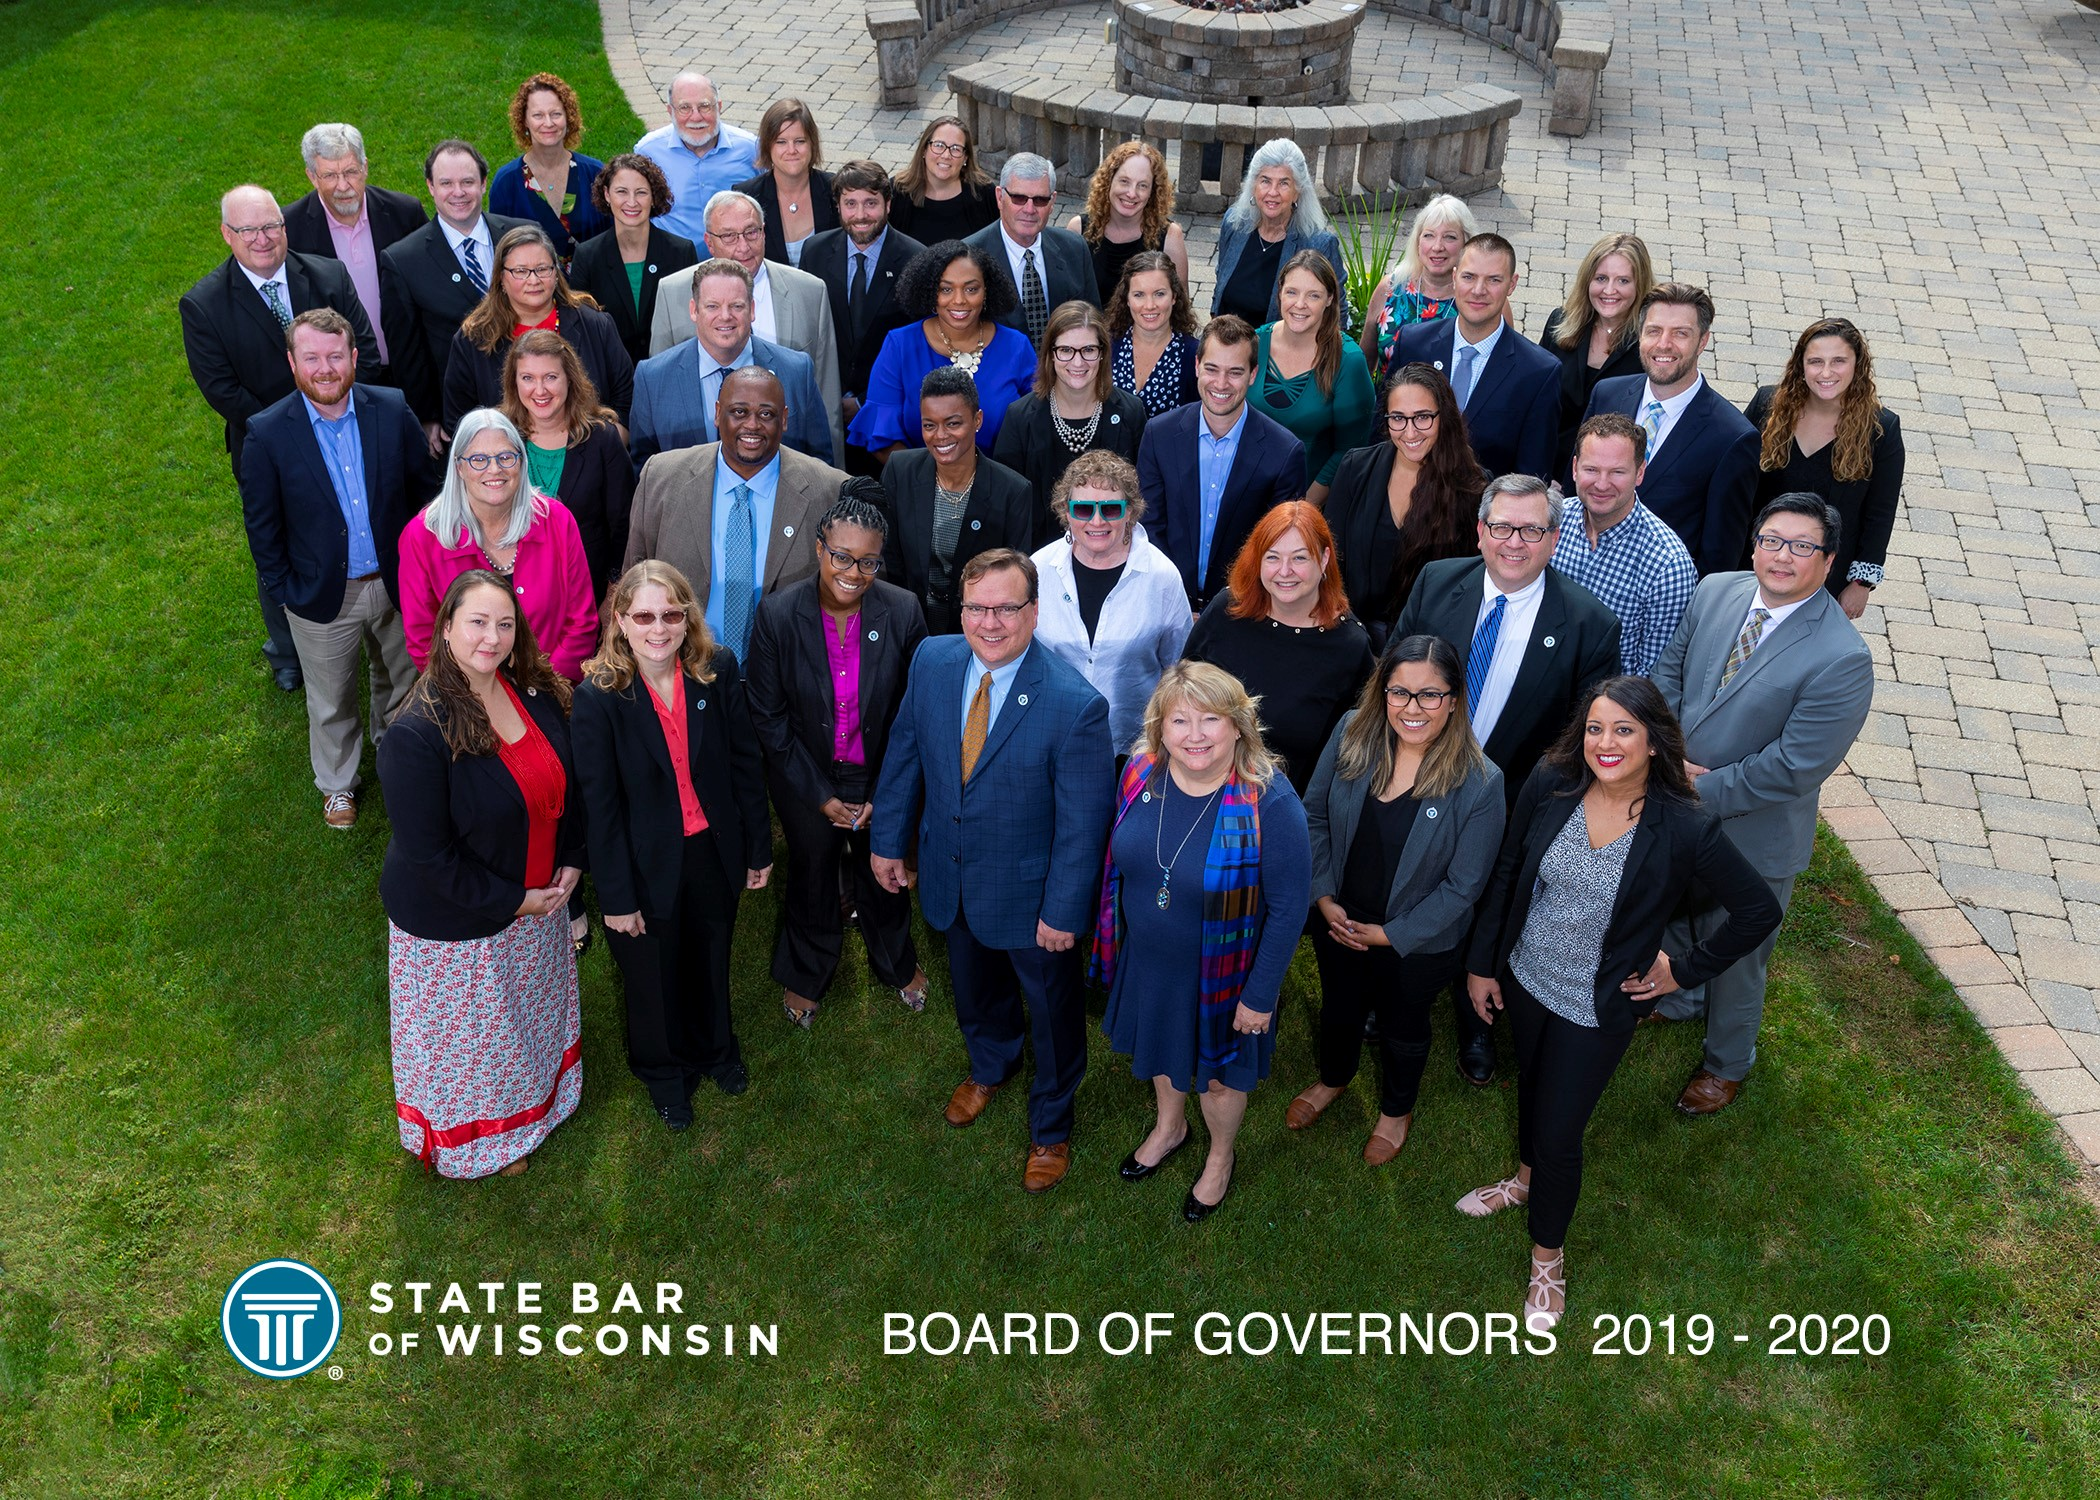 Board of Governors 2019-2020